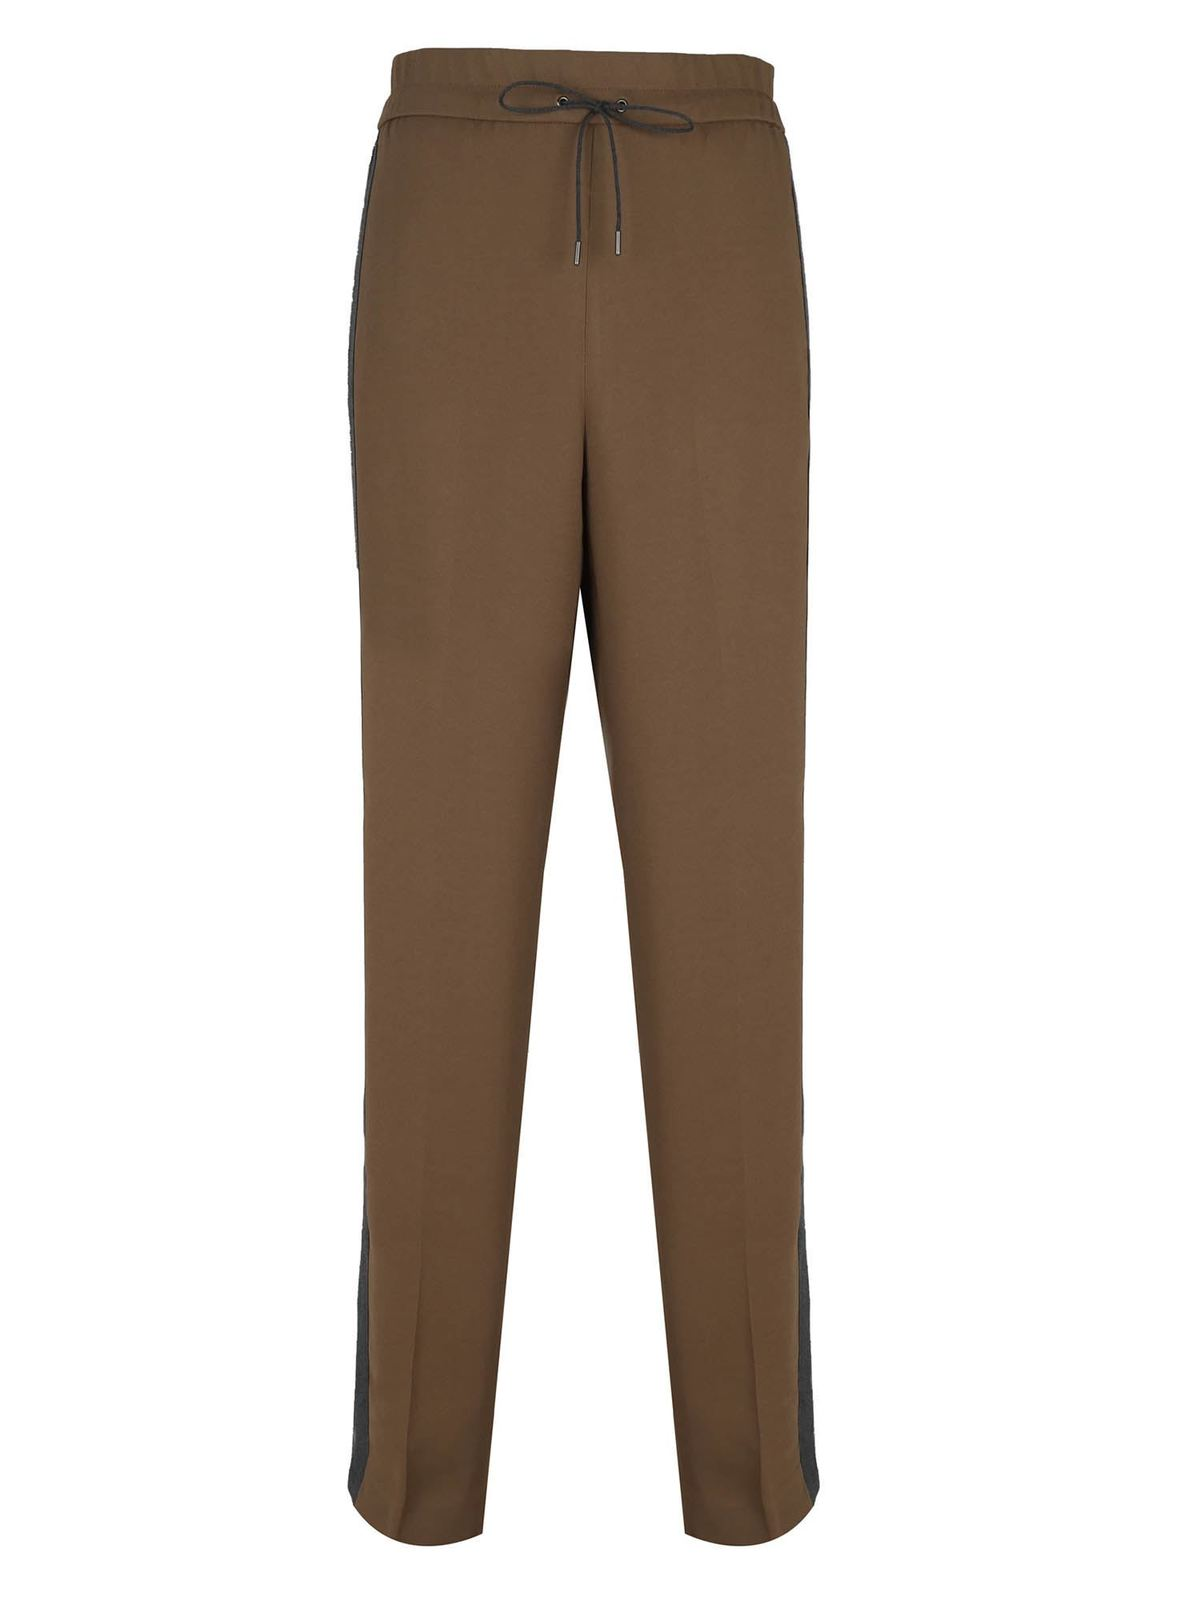 Fabiana Filippi SIDE BANDS PANTS IN BROWN